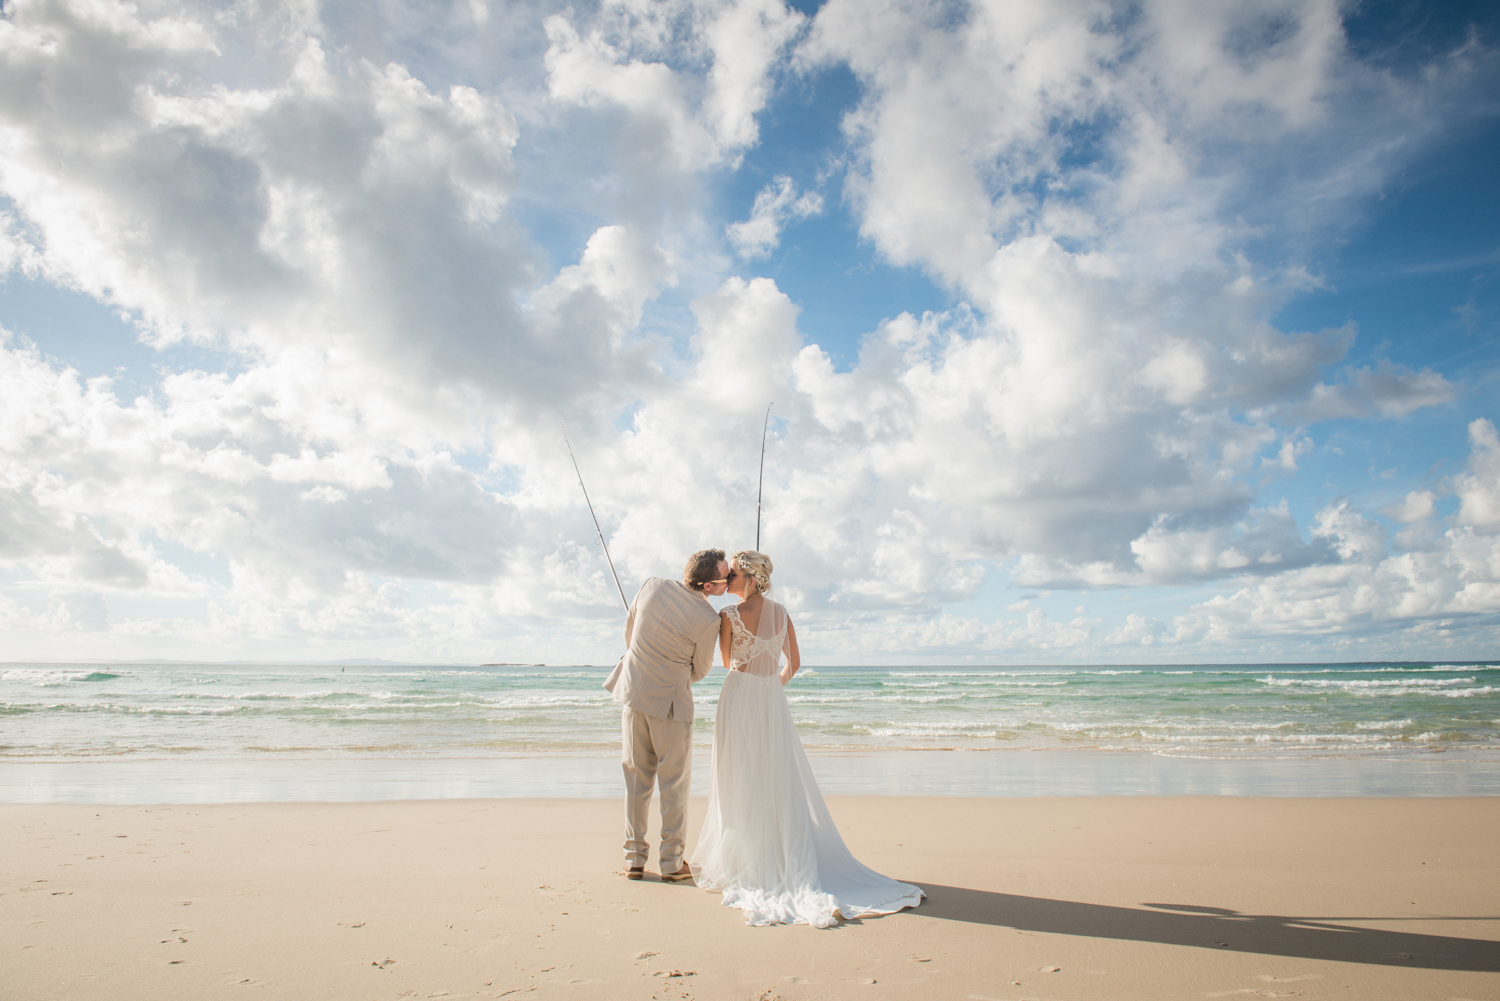 newlyweds fishing on beach